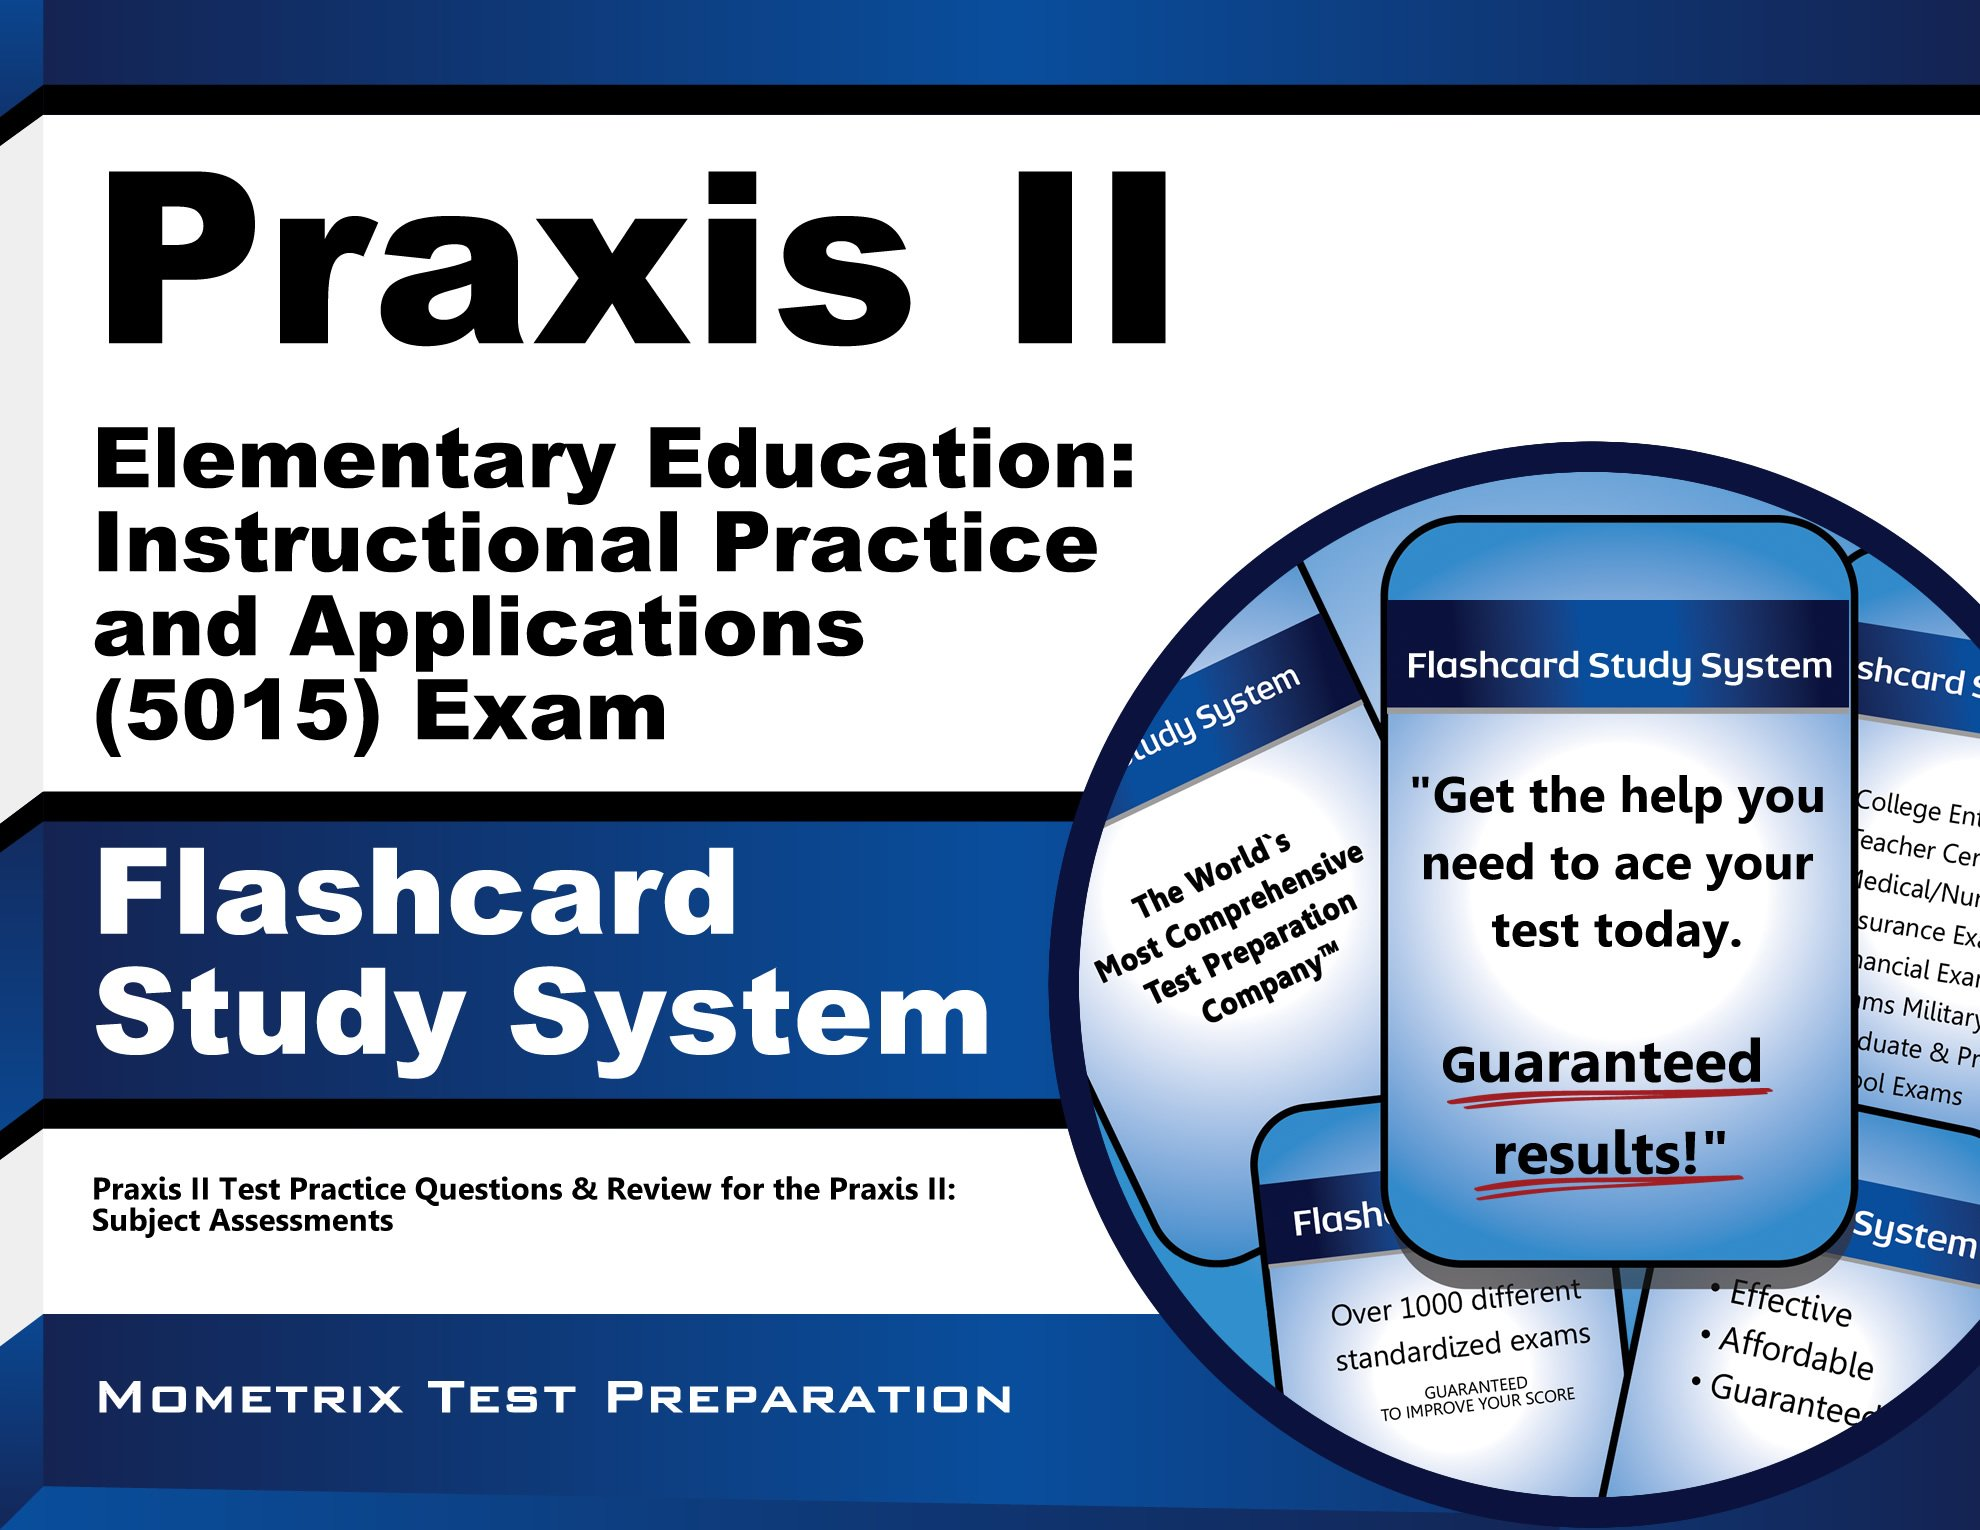 Download Praxis II Elementary Education: Instructional Practice and Applications (5015) Exam Flashcard Study System: Praxis II Test Practice Questions & Review for the Praxis II: Subject Assessments ebook